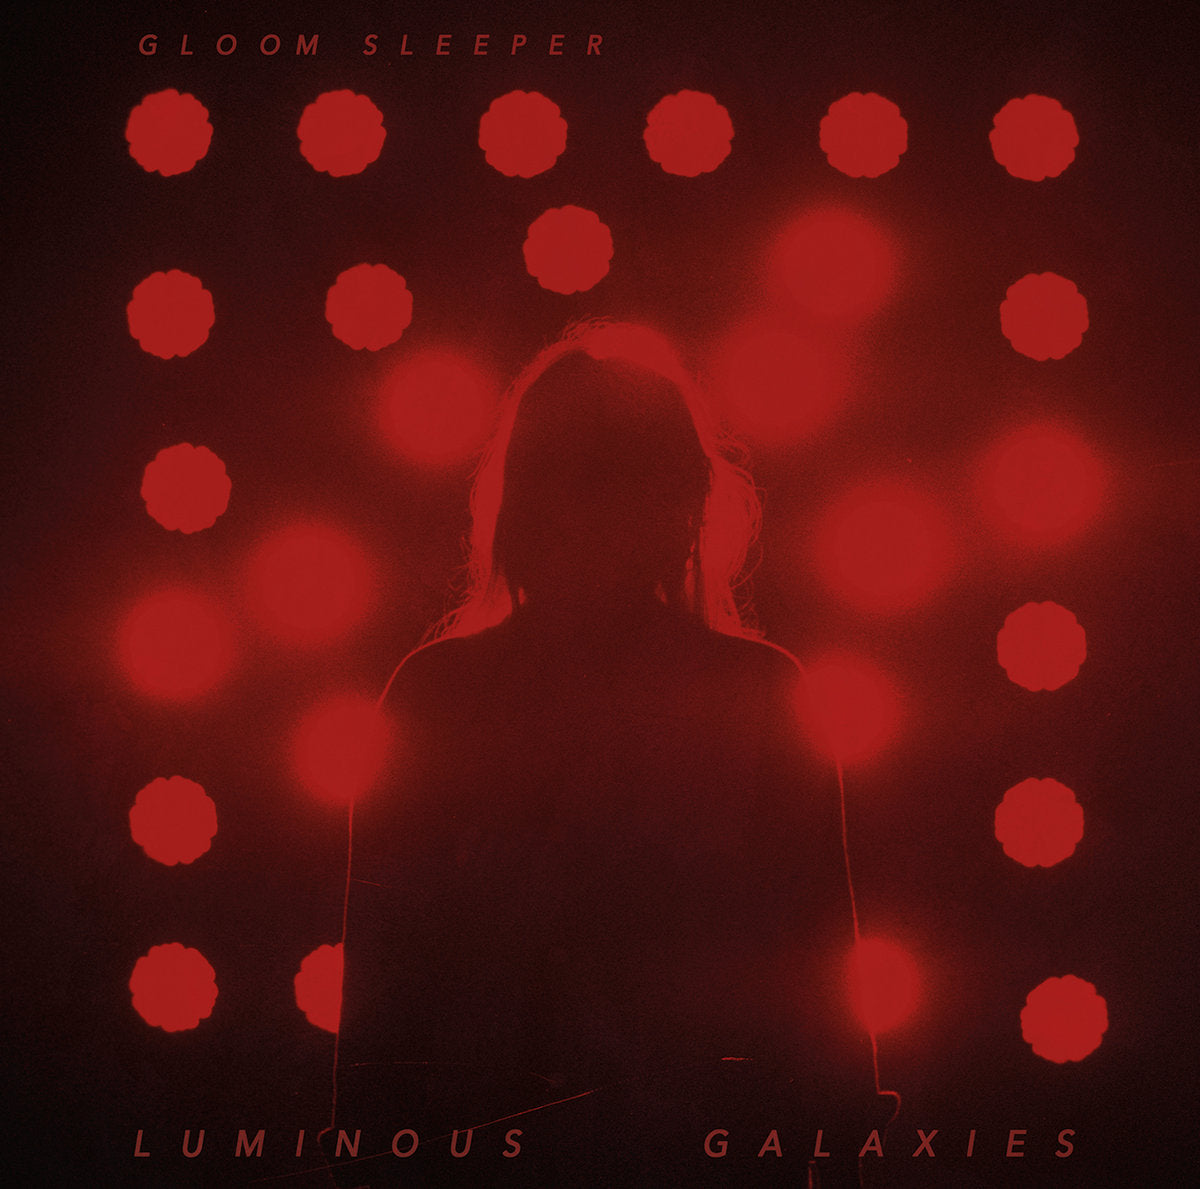 Gloom Sleeper - Luminous Galaxies - New LP